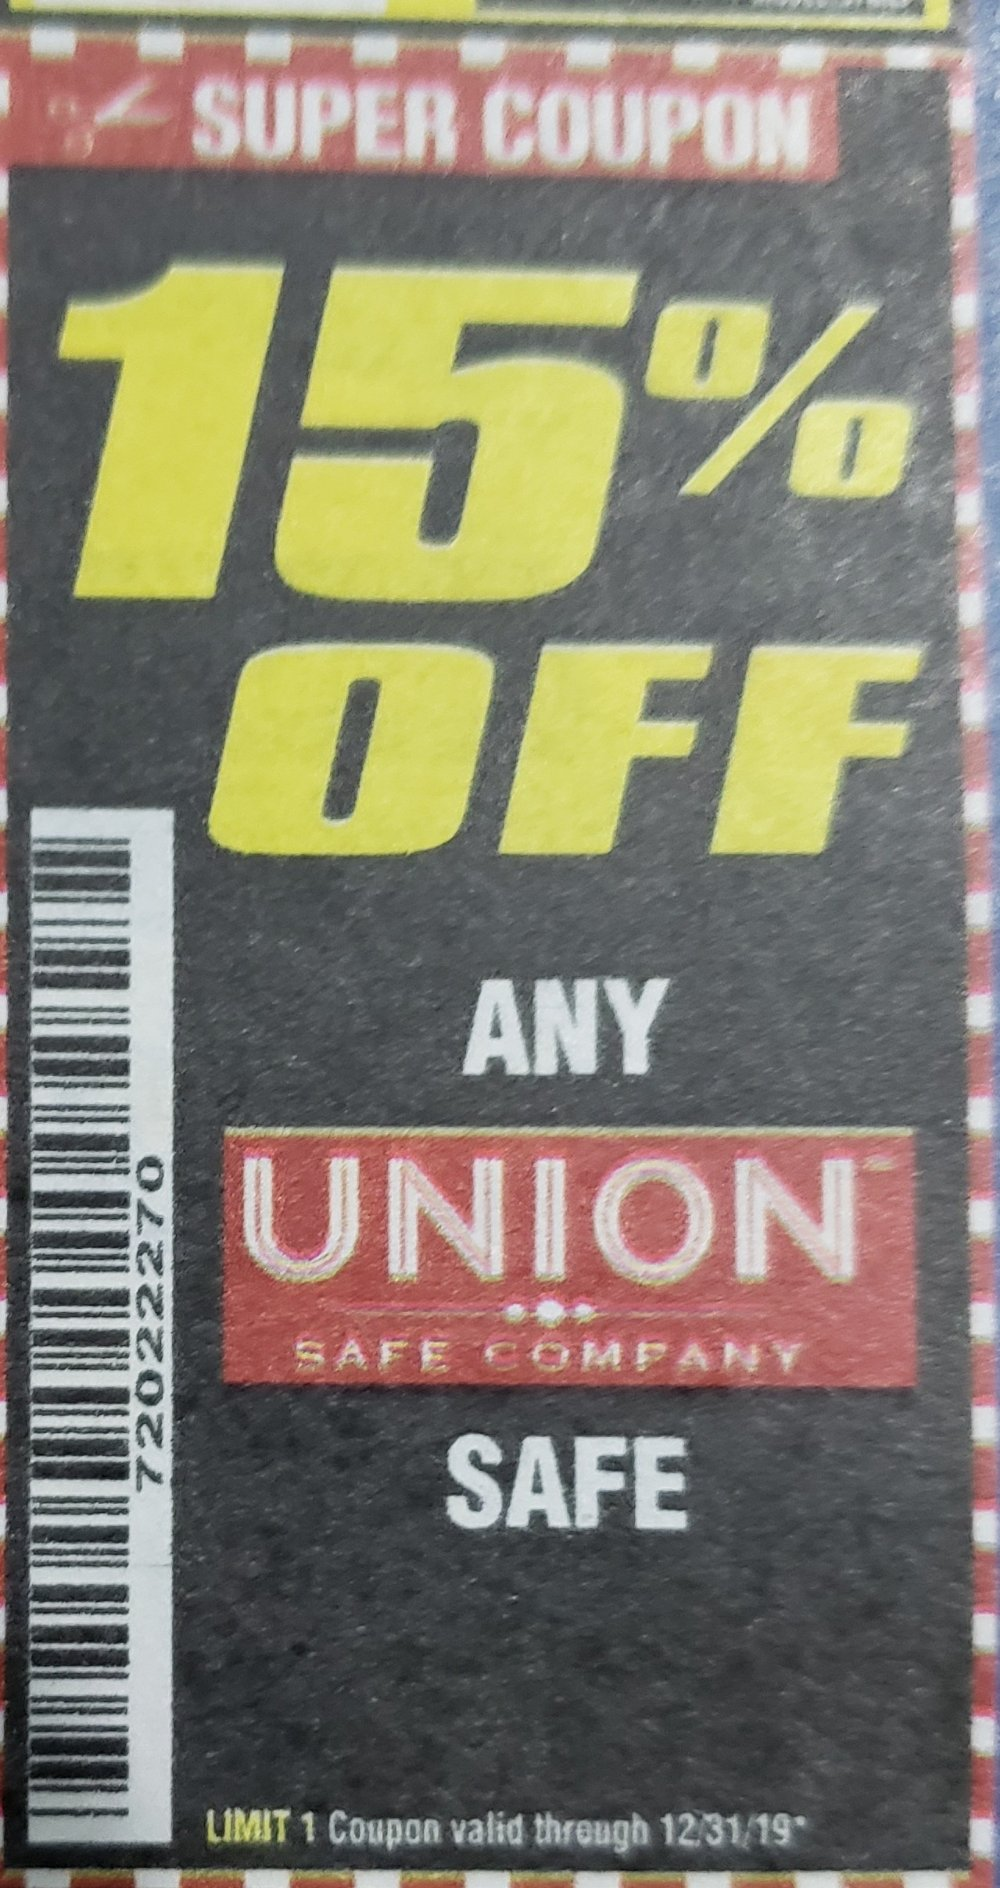 Harbor Freight Coupon, HF Coupons - 15% off for ANY UNION SAFT